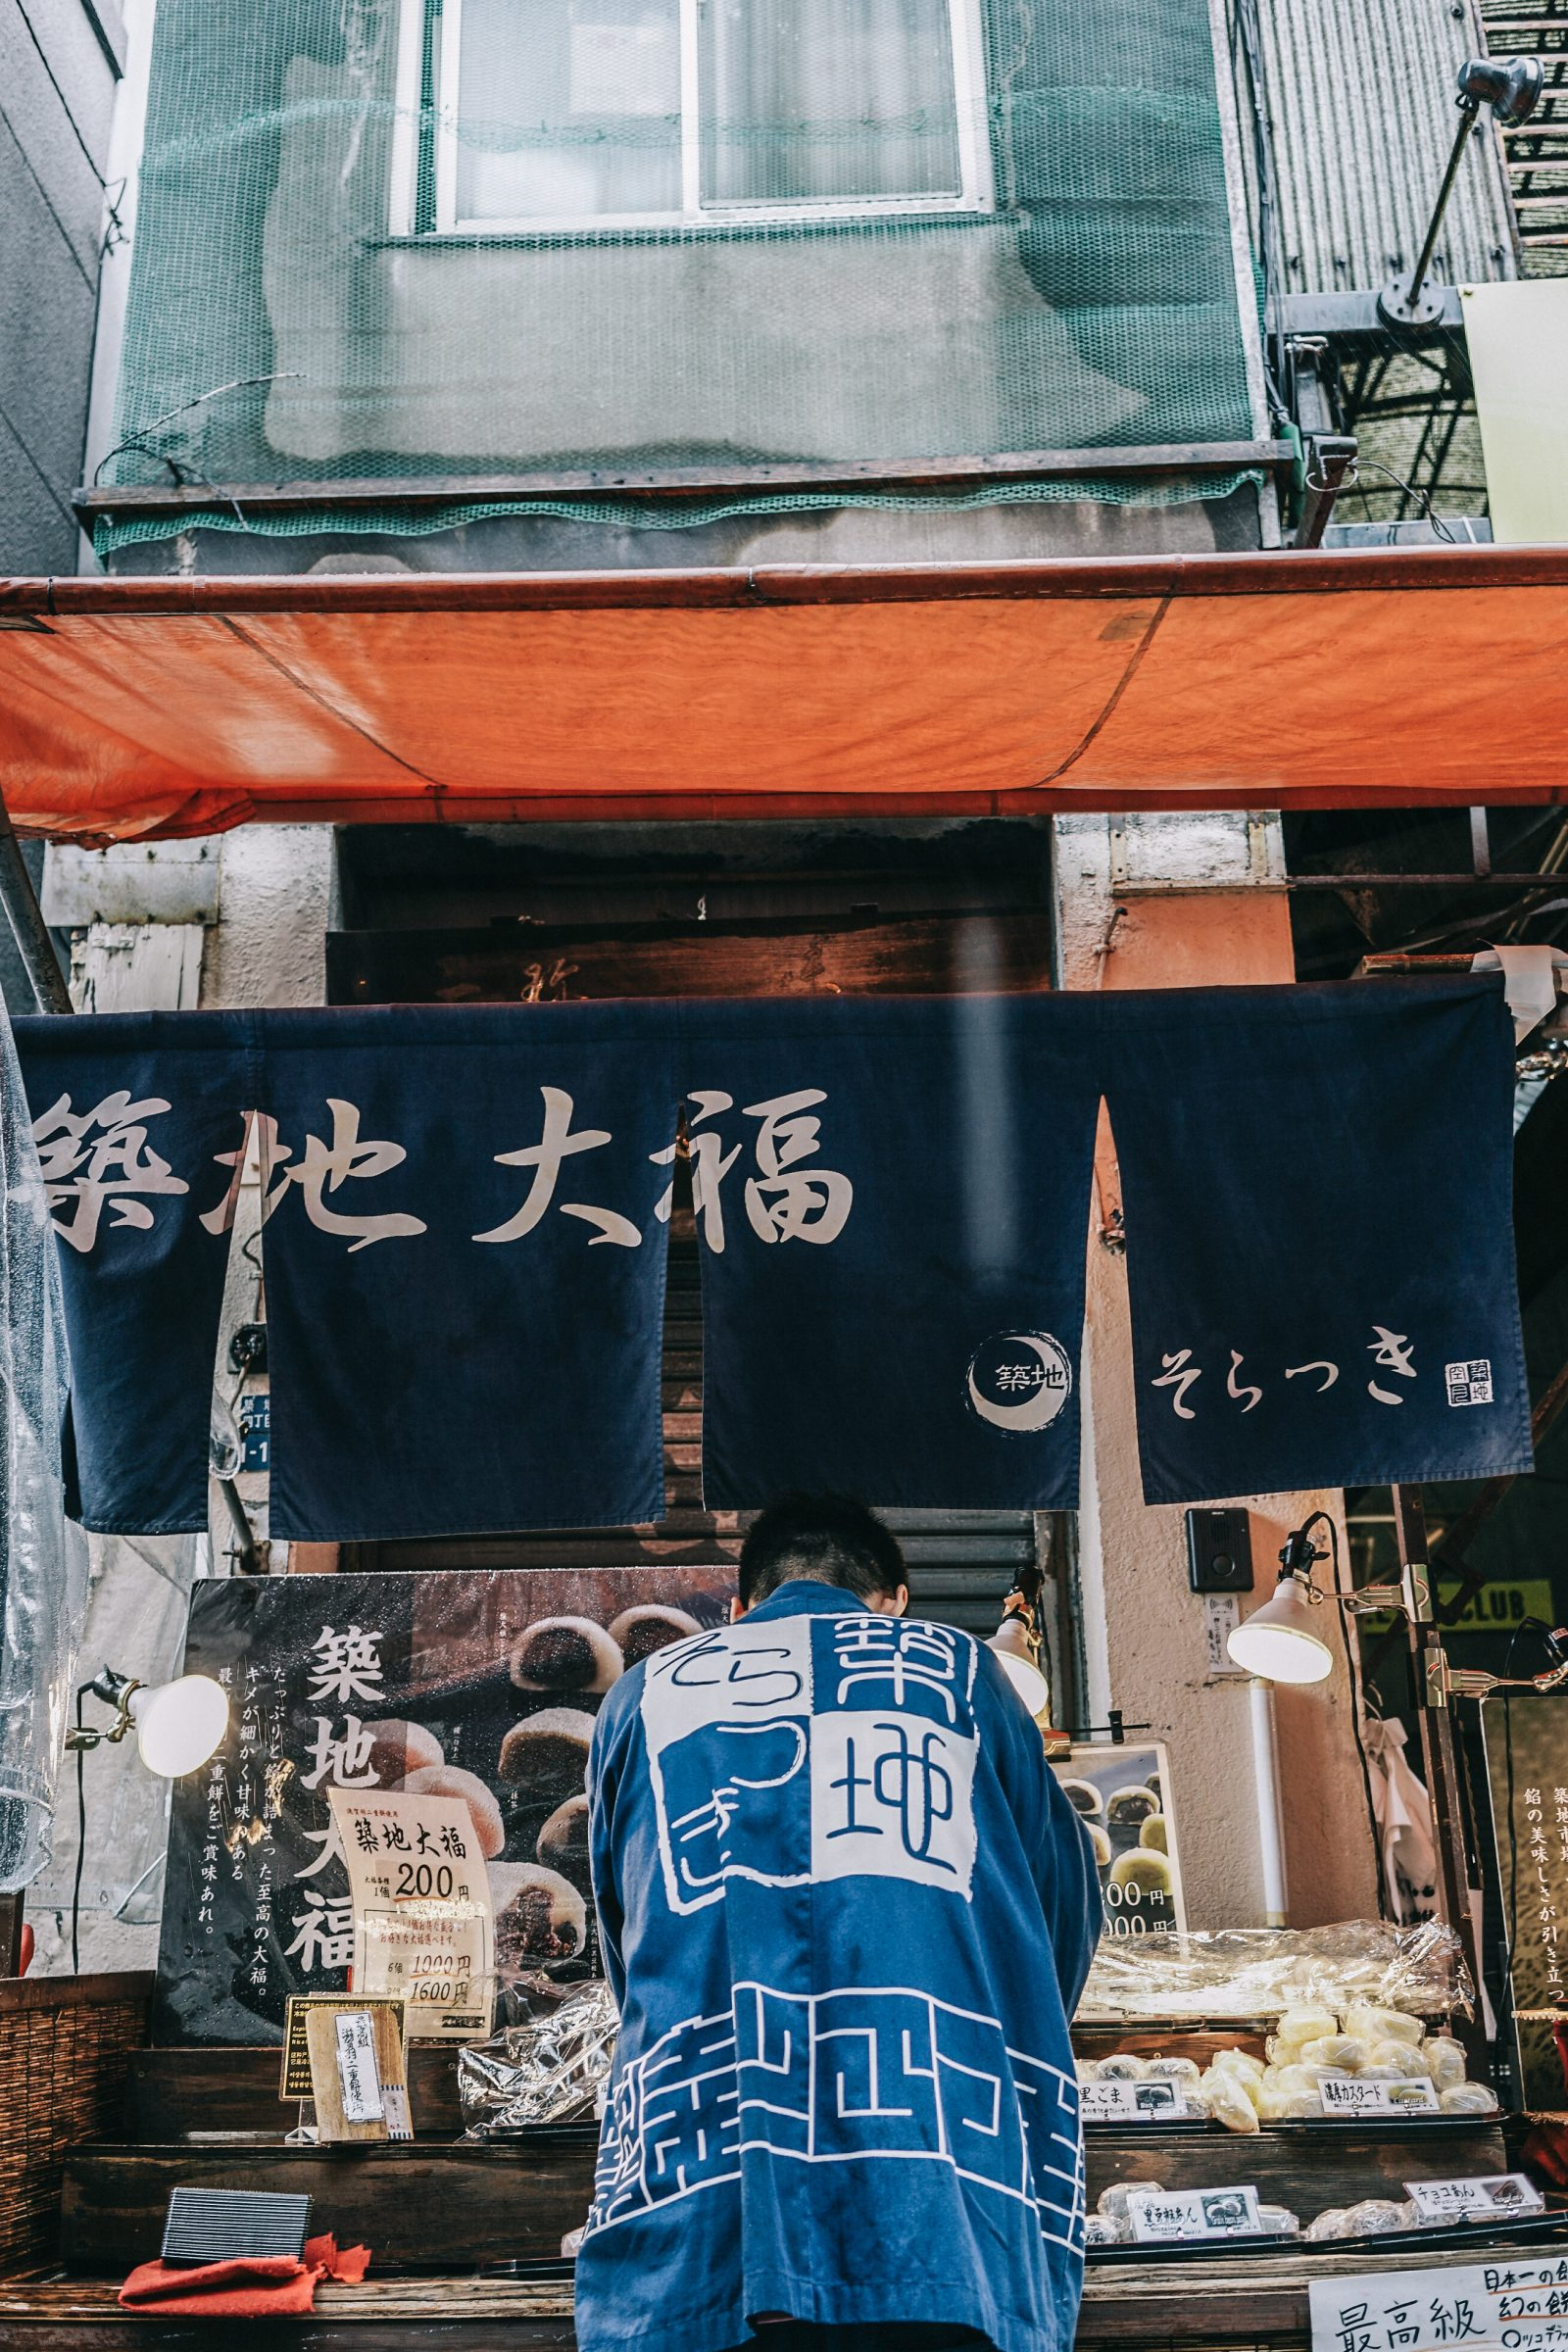 Tokyo_Travel_Guide-Fish_Market-Harajuku-Levis_Denim_Skirt-Off_The_Shoulders_Top-YSL_Sneakers-Outfit-Collage_Vintage-Street_Style-88